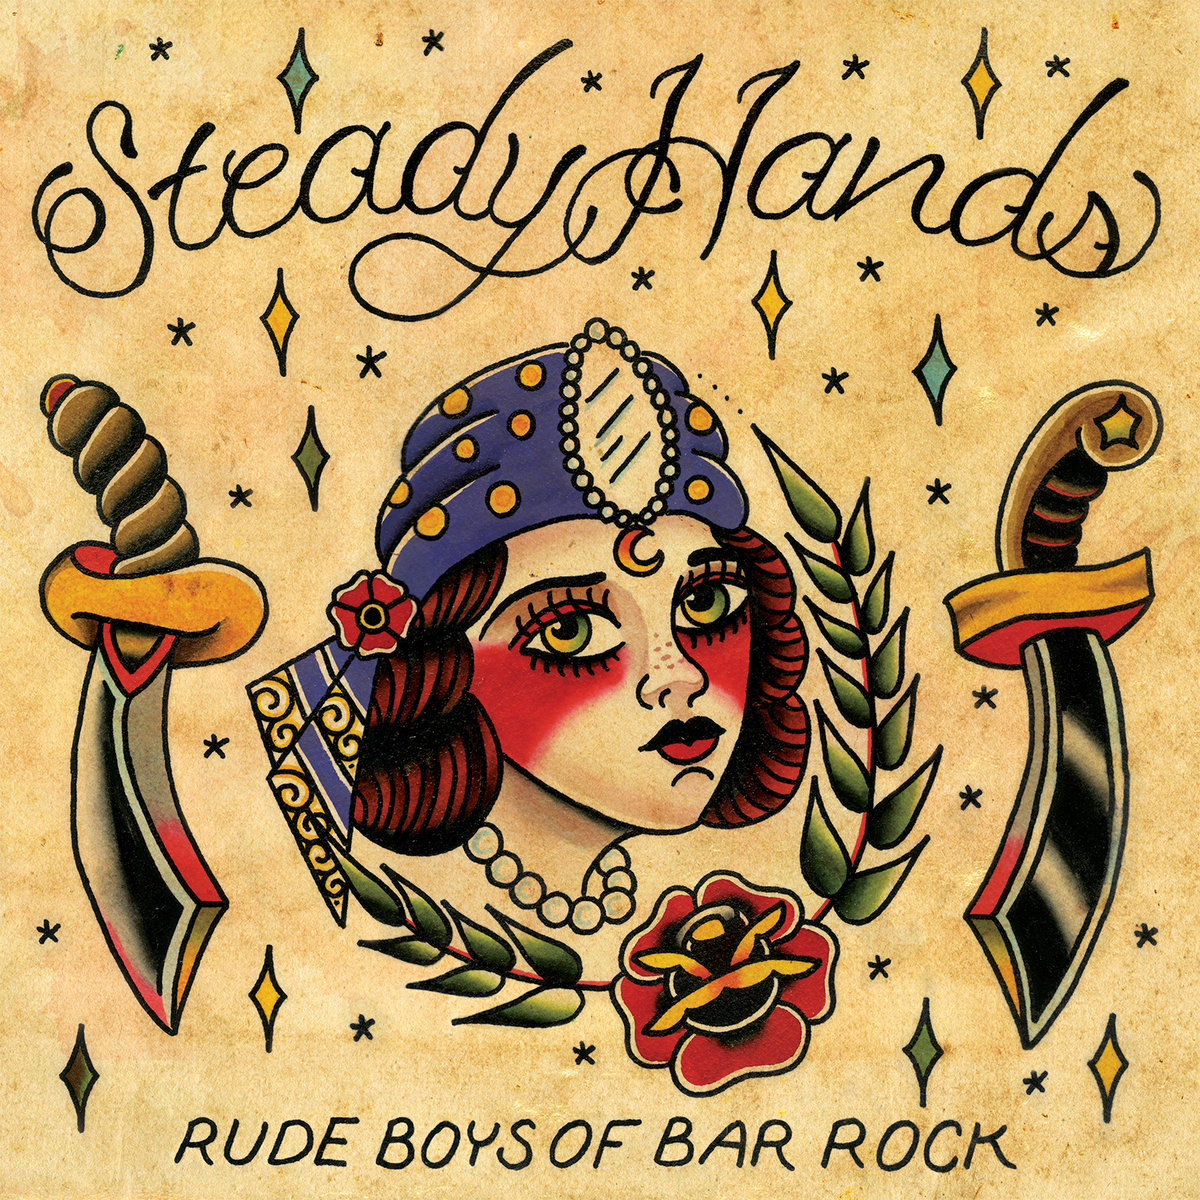 Steady Hands - Rude Boys Of Bar Rock 2xLP Vinyl Layout & Design Illustration by Brandon Swanson - instagram.com/brandonswansontattoo